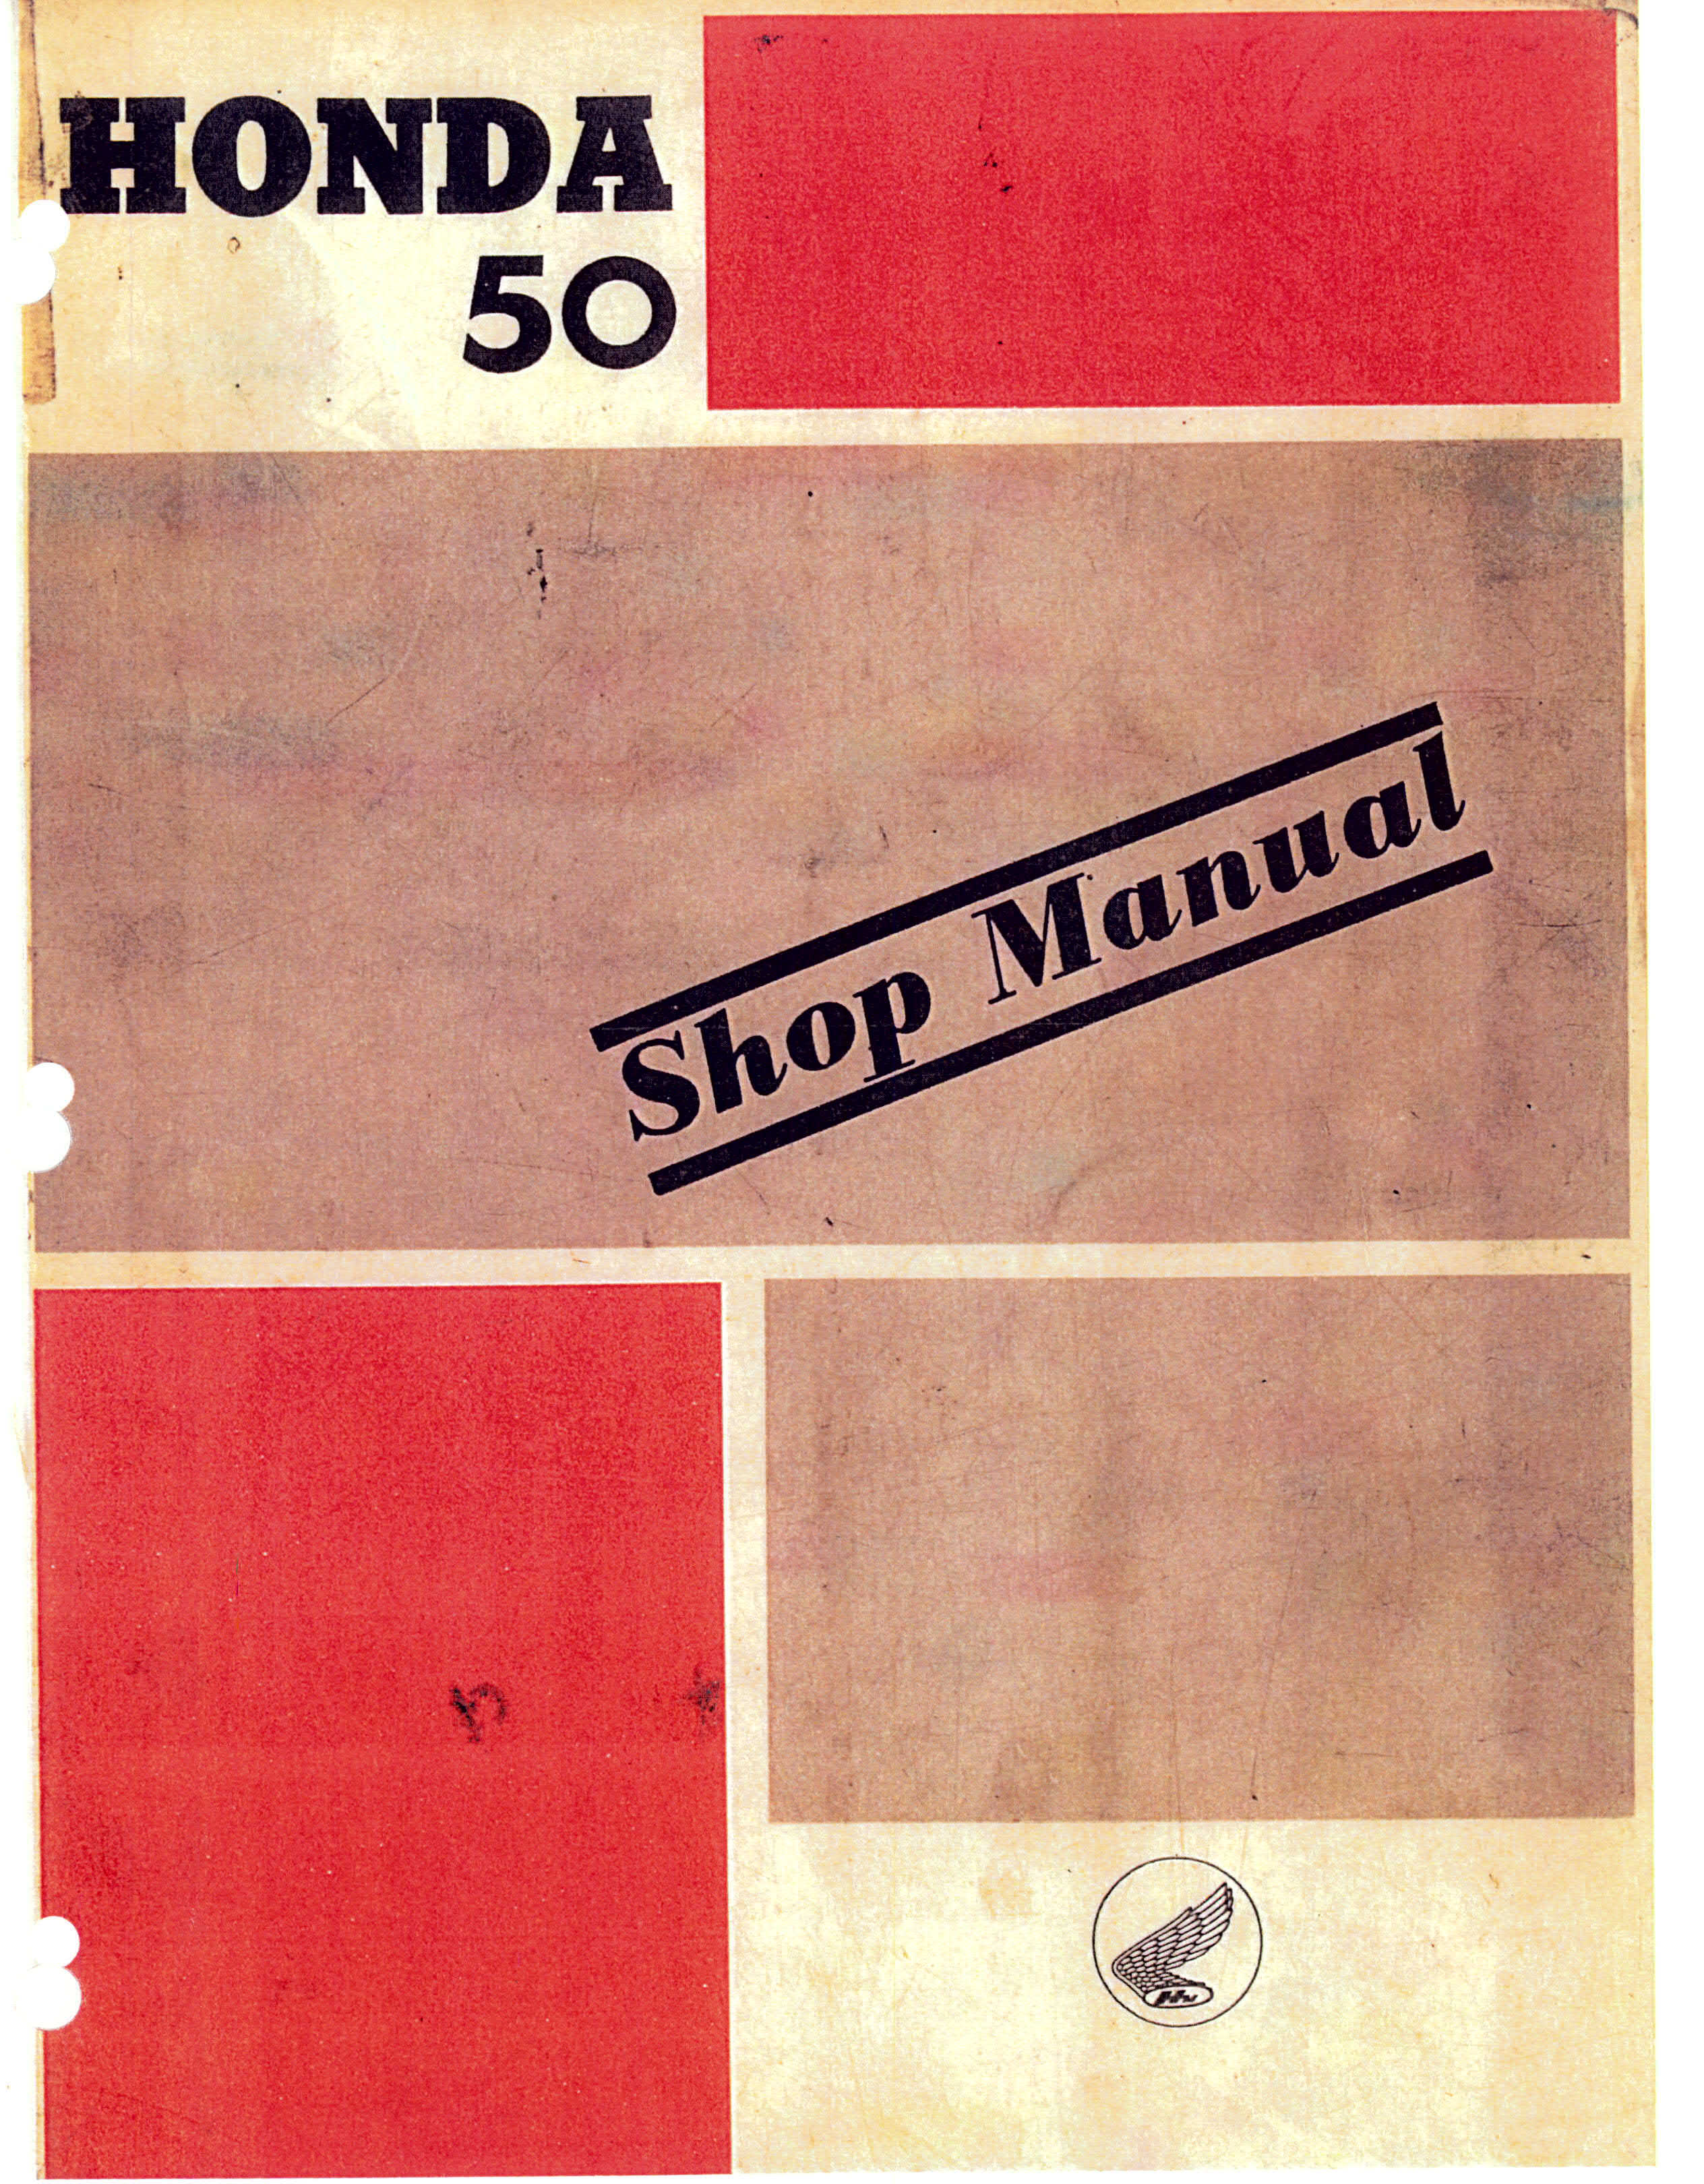 Workshop manual for Honda C102 (1961)